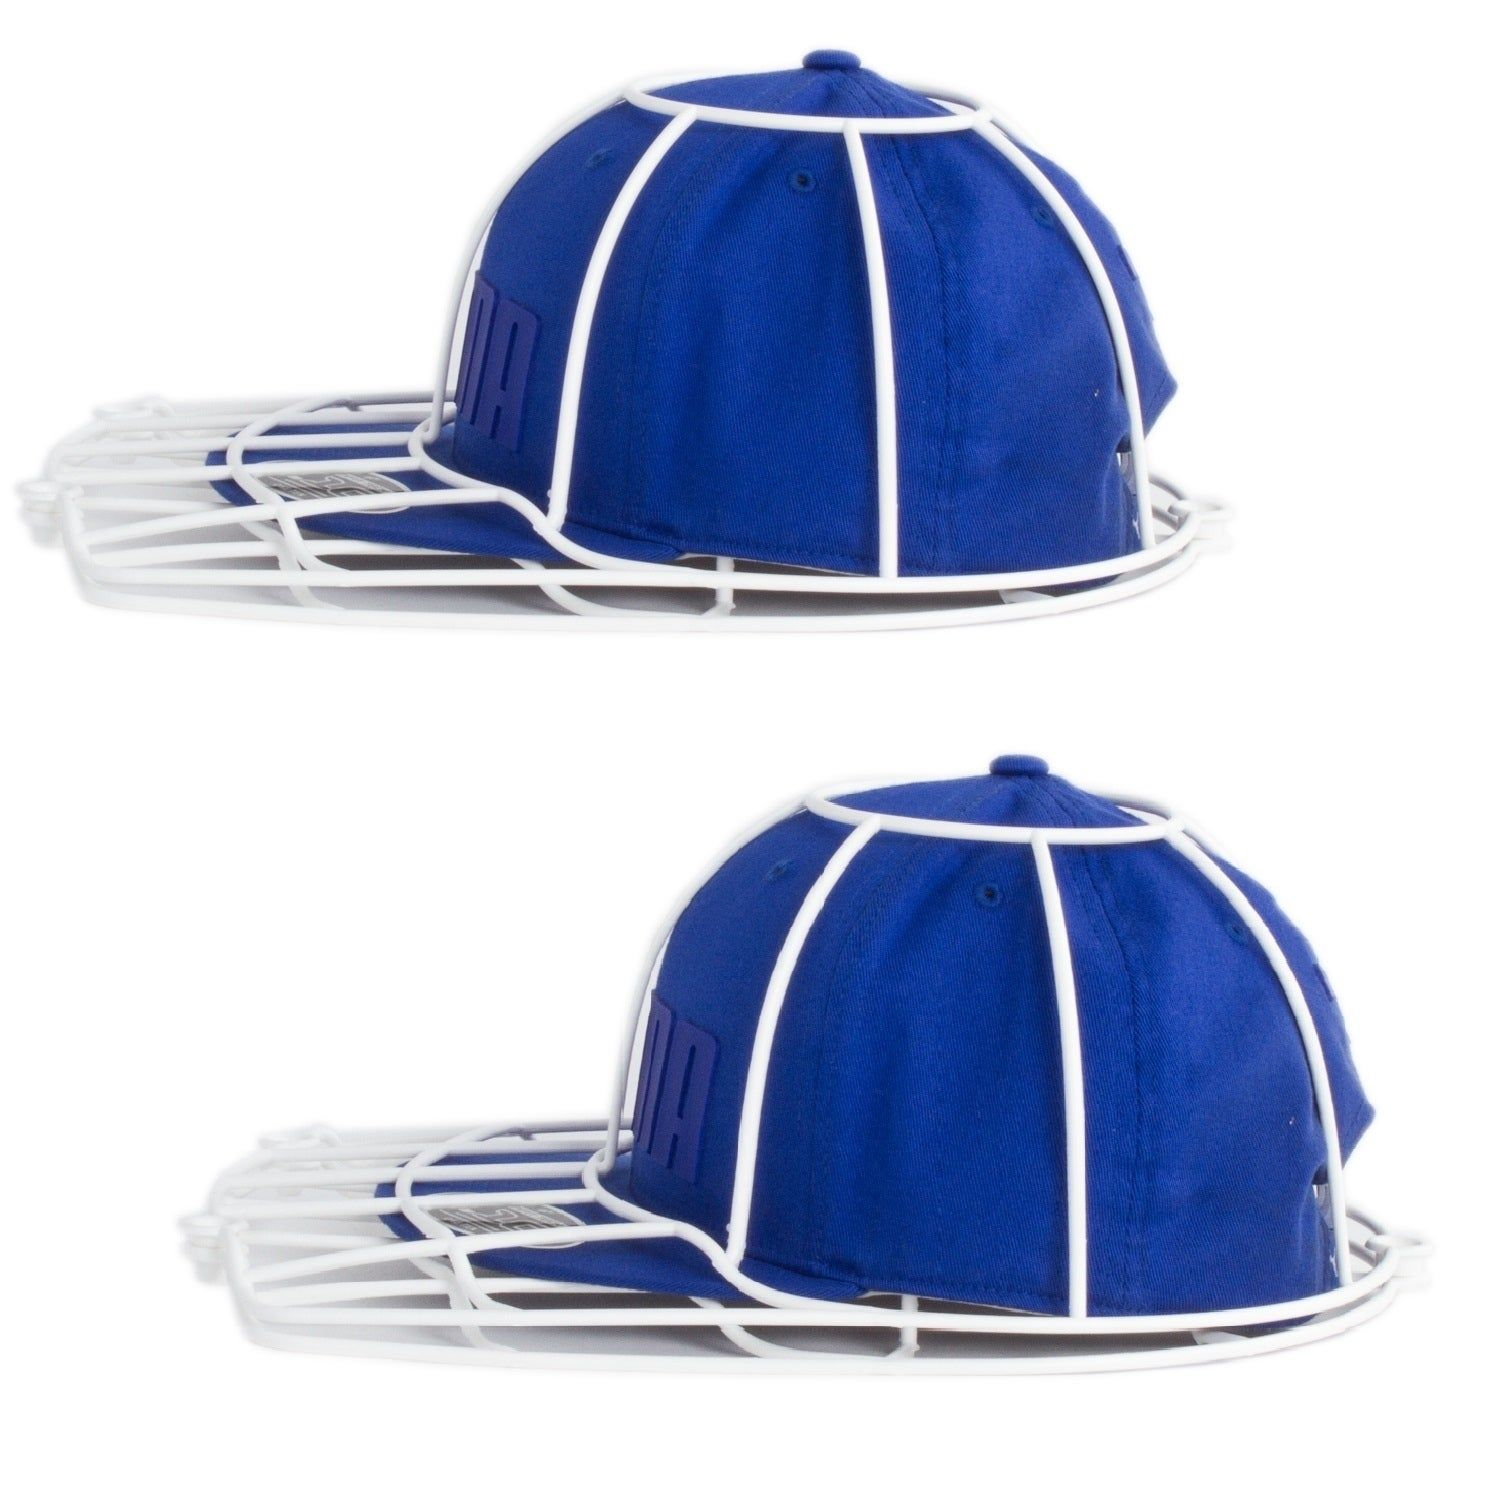 Our Best Laundry Deals In 2021 How To Clean Hats Baseball Cap Hats